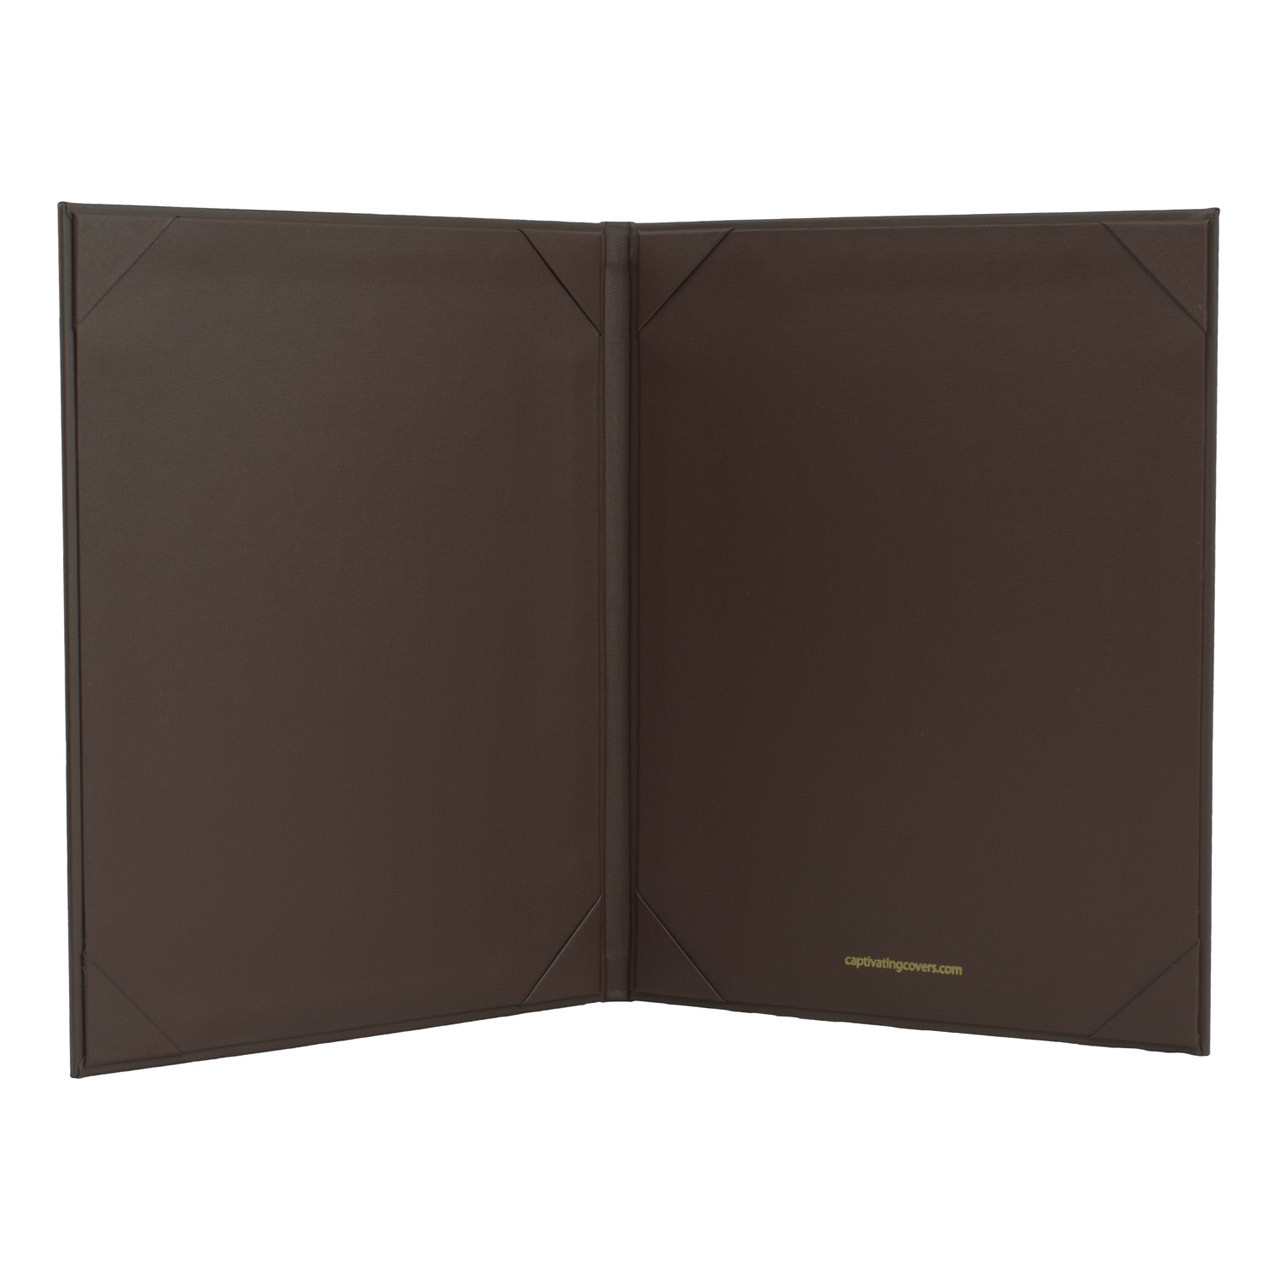 Menu Cover in Dark Brown Faux Leather  2-Panels for 5.5 in x 8.5 in. Menu Sheets (inside shown)